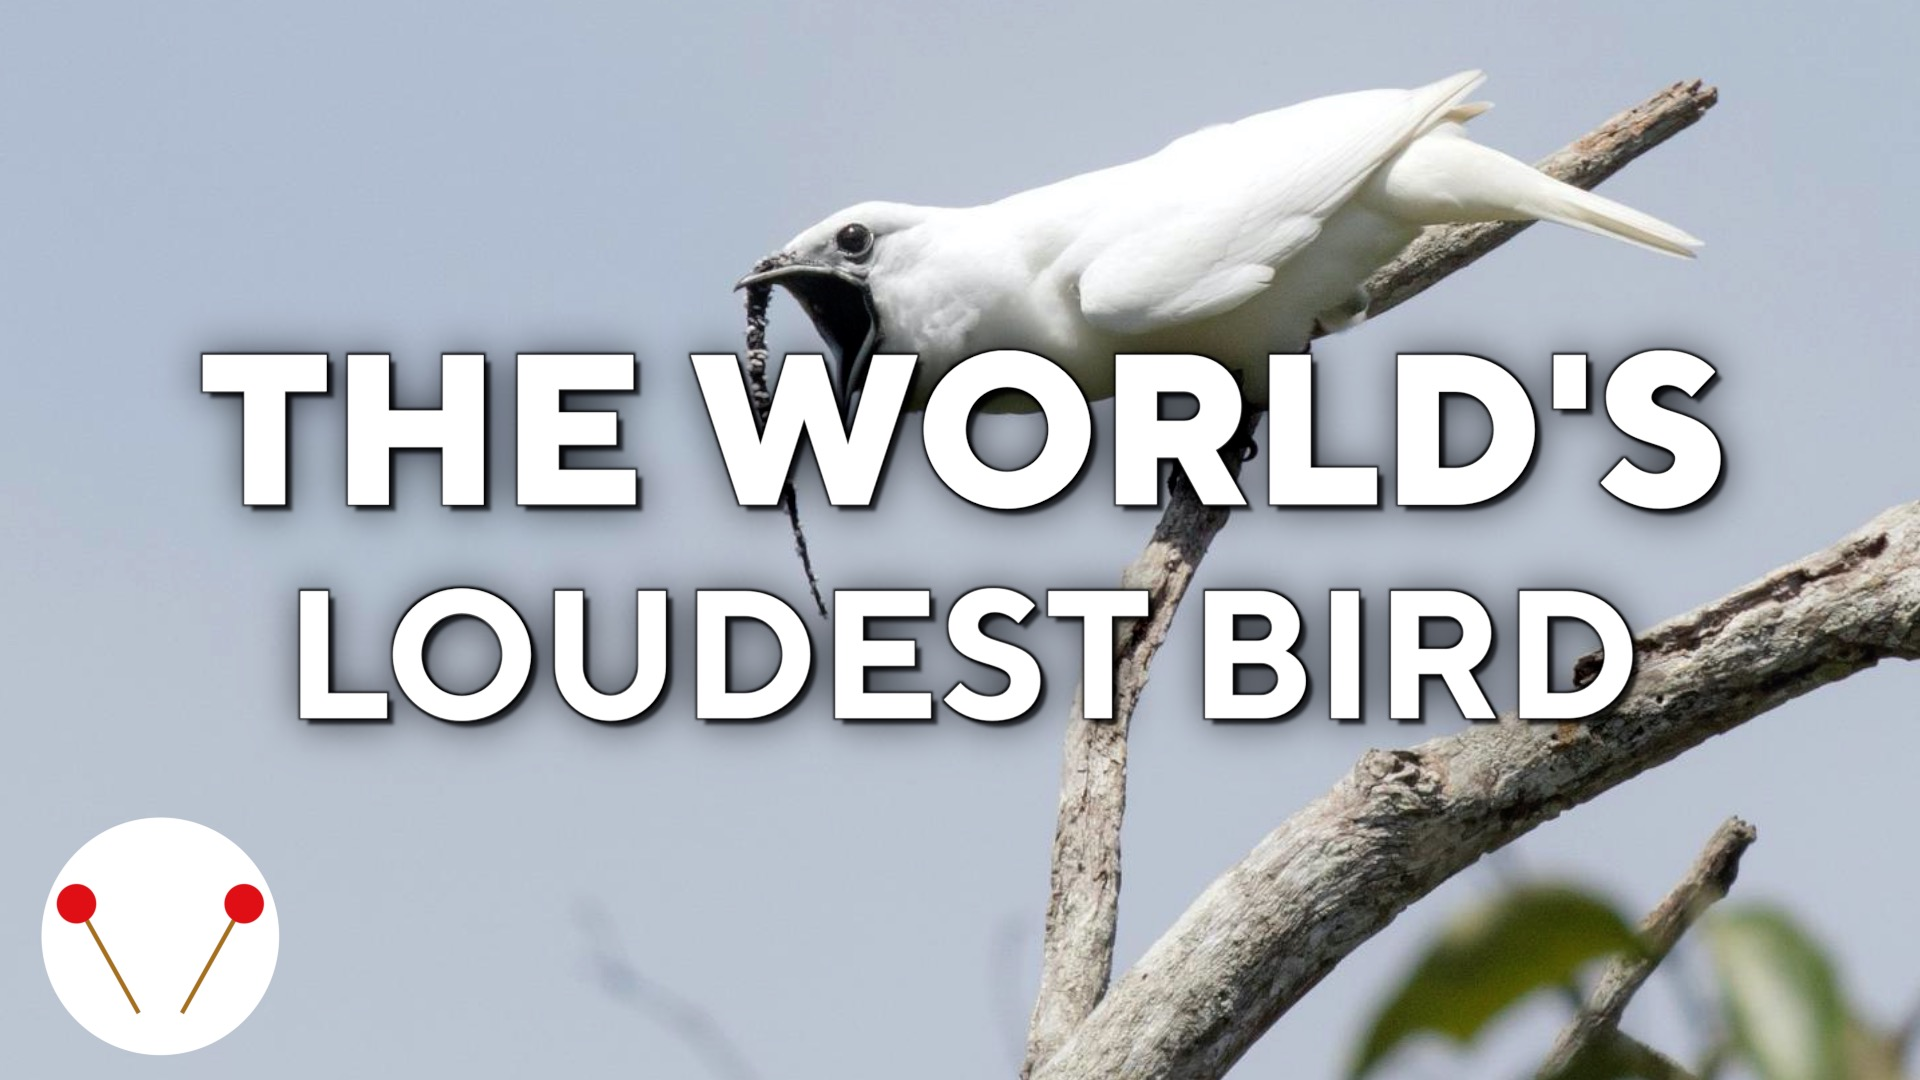 The world's loudest bird